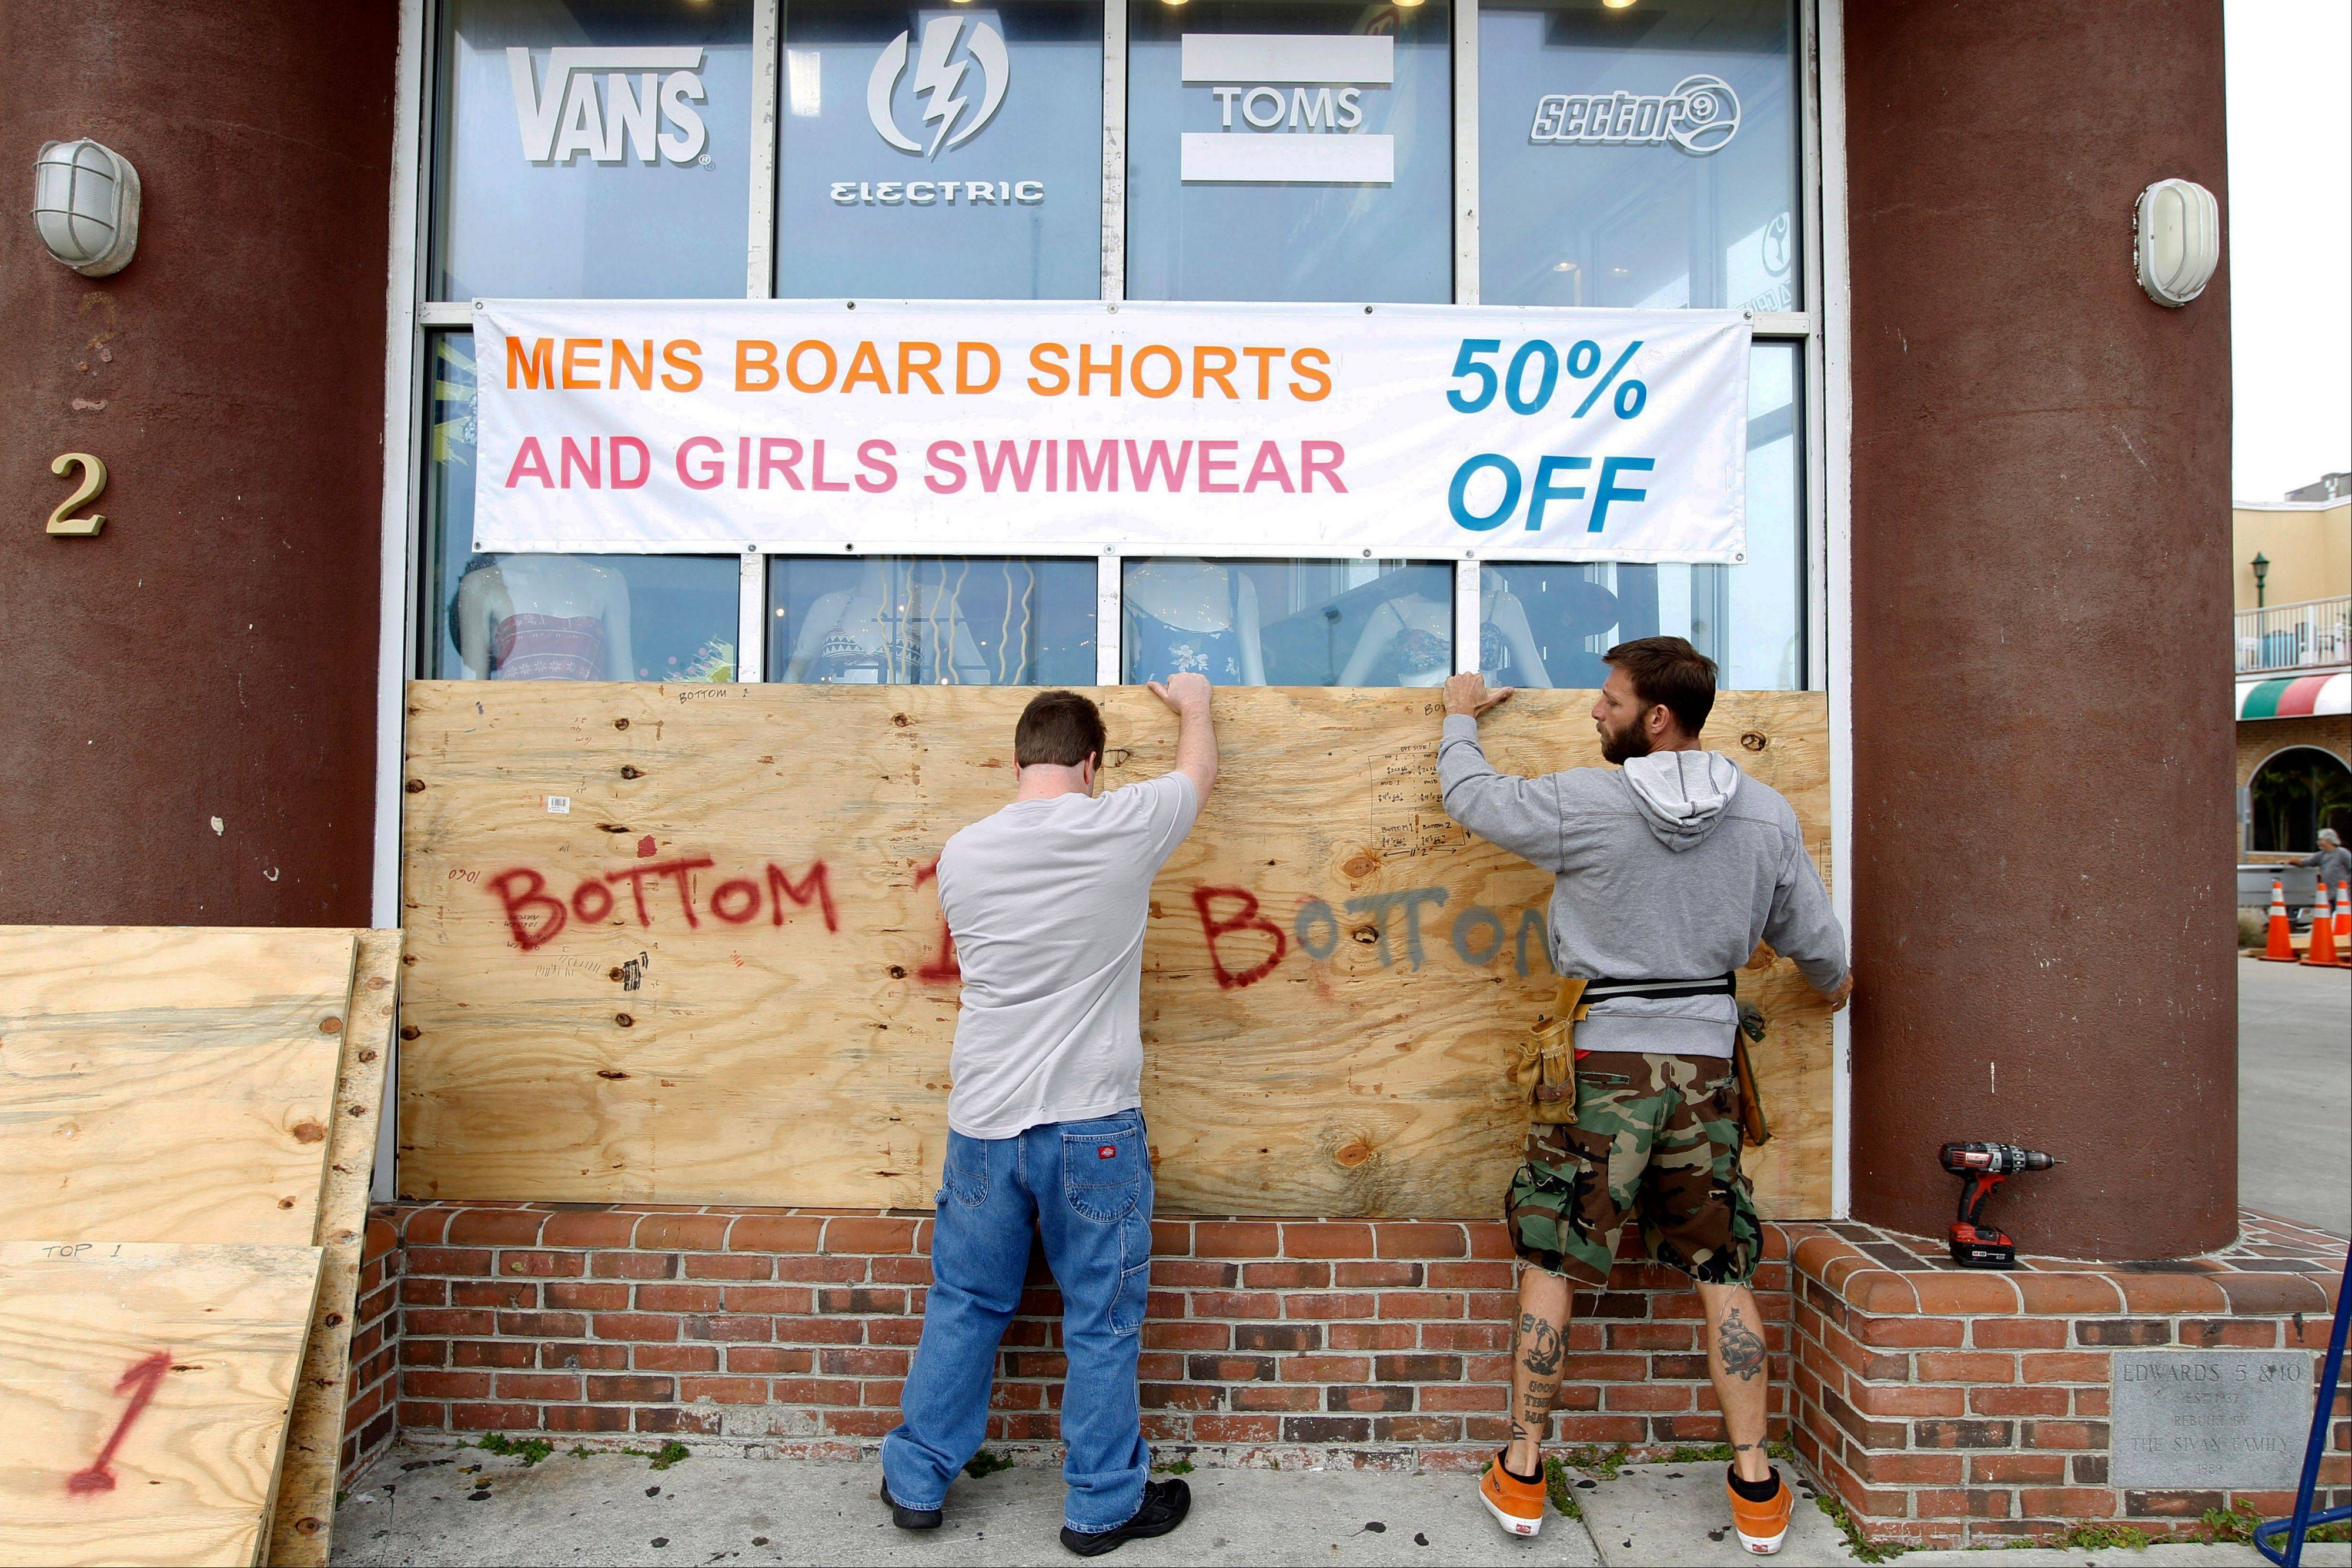 Store manager L.P. Cyburt, right, gets help boarding up the windows of the business as Hurricane Sandy approaches the Atlantic Coast, in Ocean City, Md., on Saturday, Oct. 27, 2012.